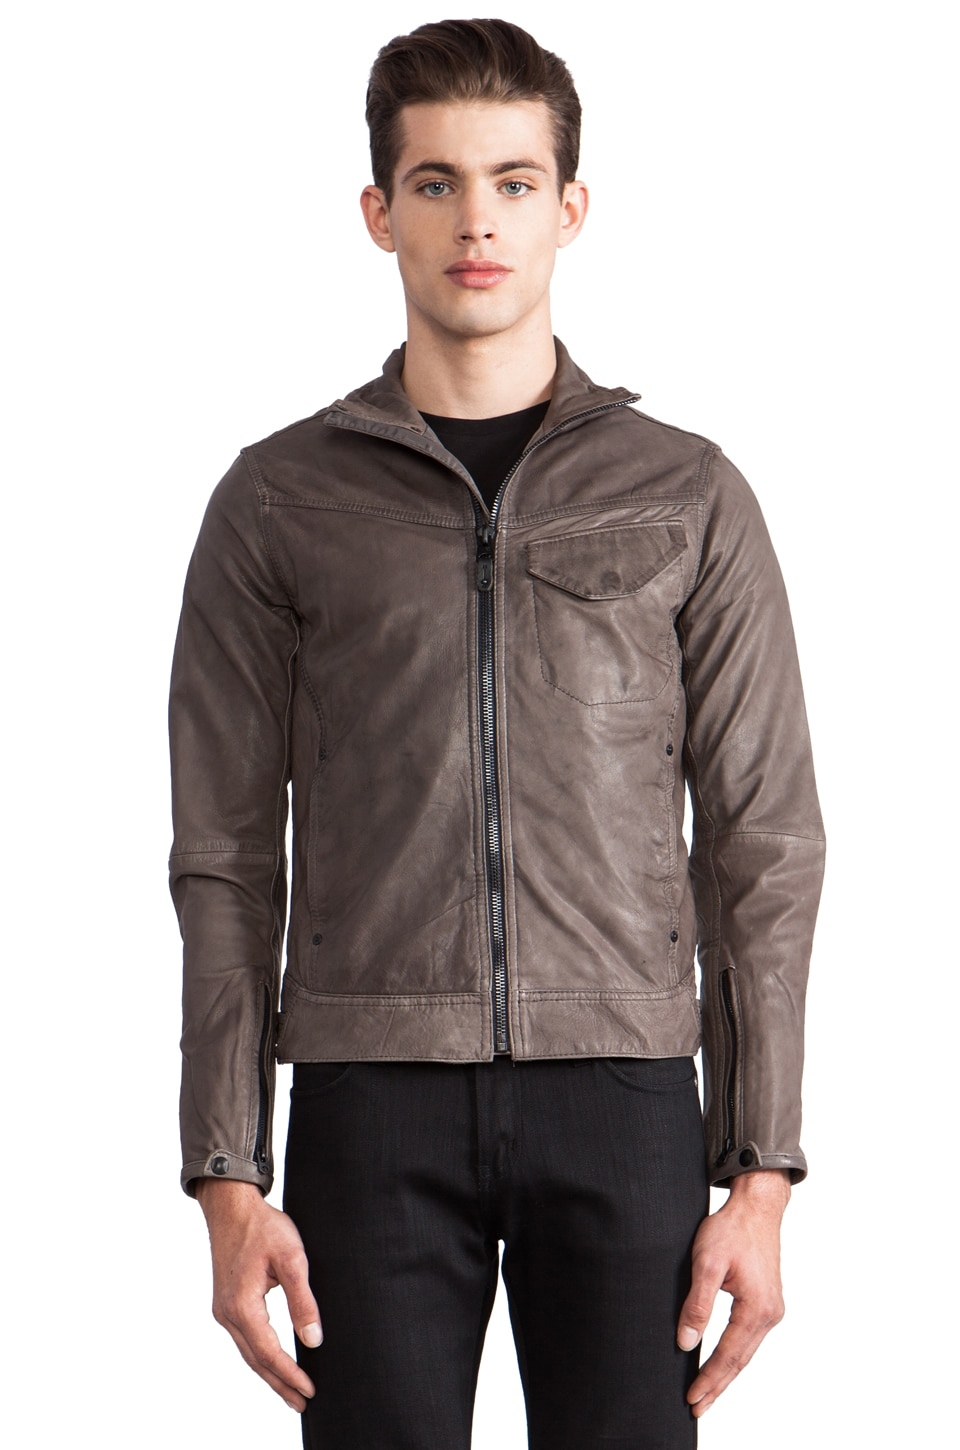 G-Star JSF Leather Jacket in Castor